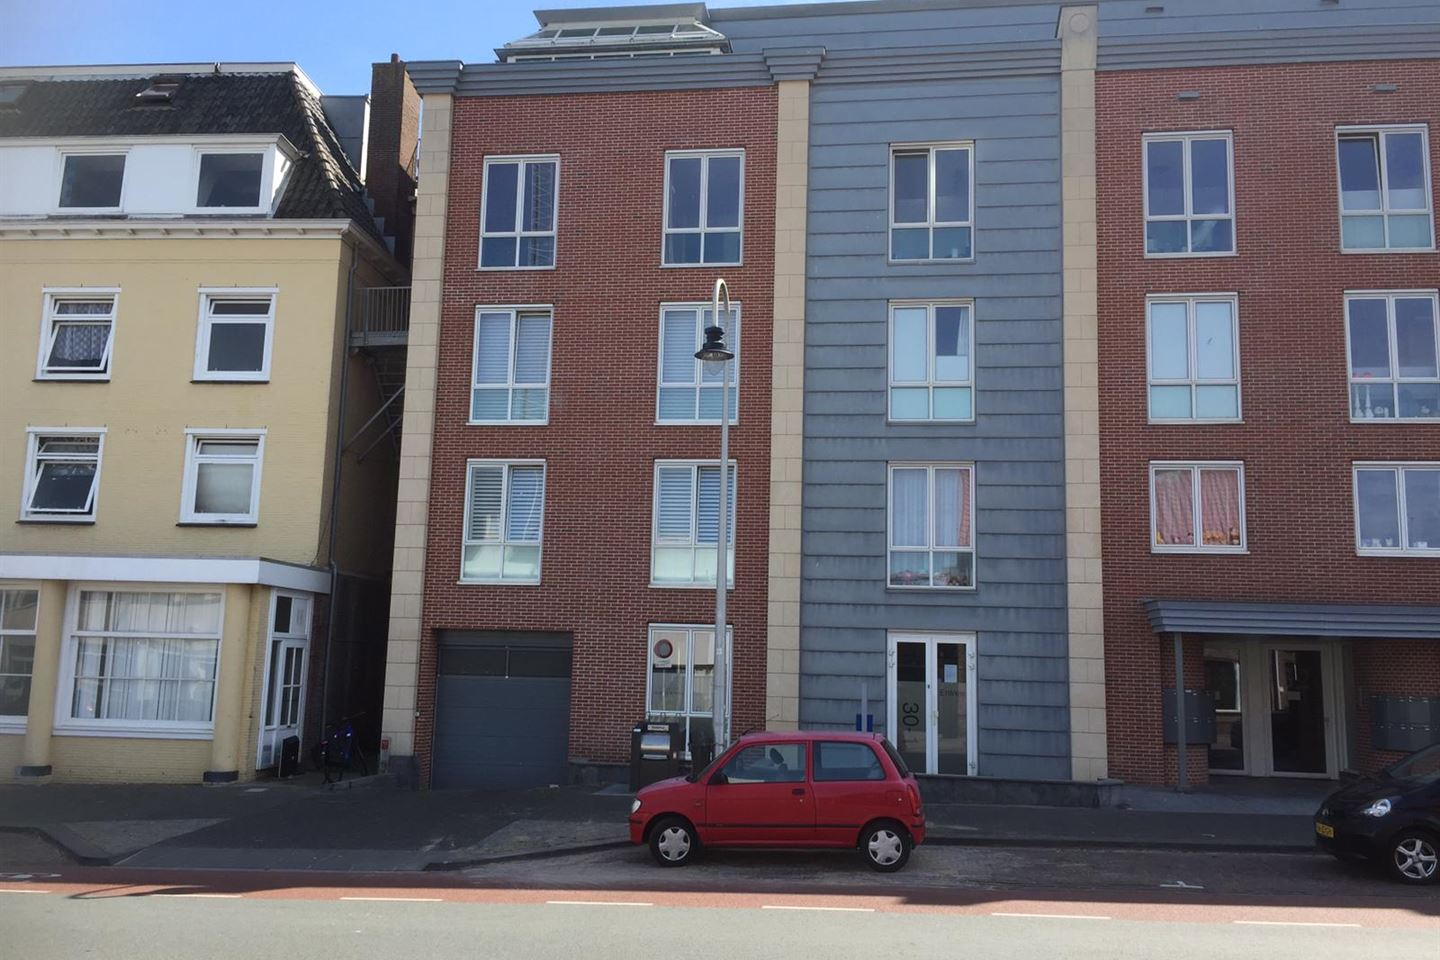 View photo 1 of Hogeweg GARAGE NR 8